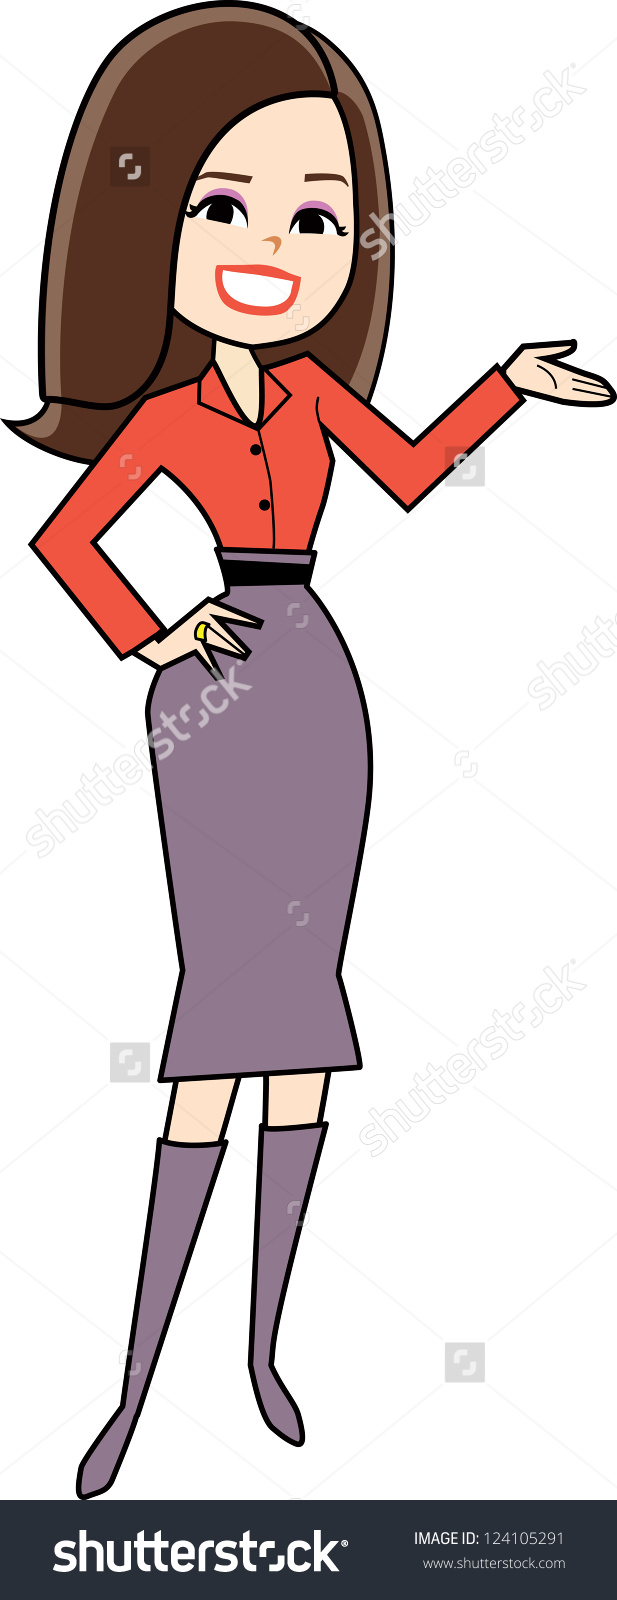 Woman clipart #11, Download drawings